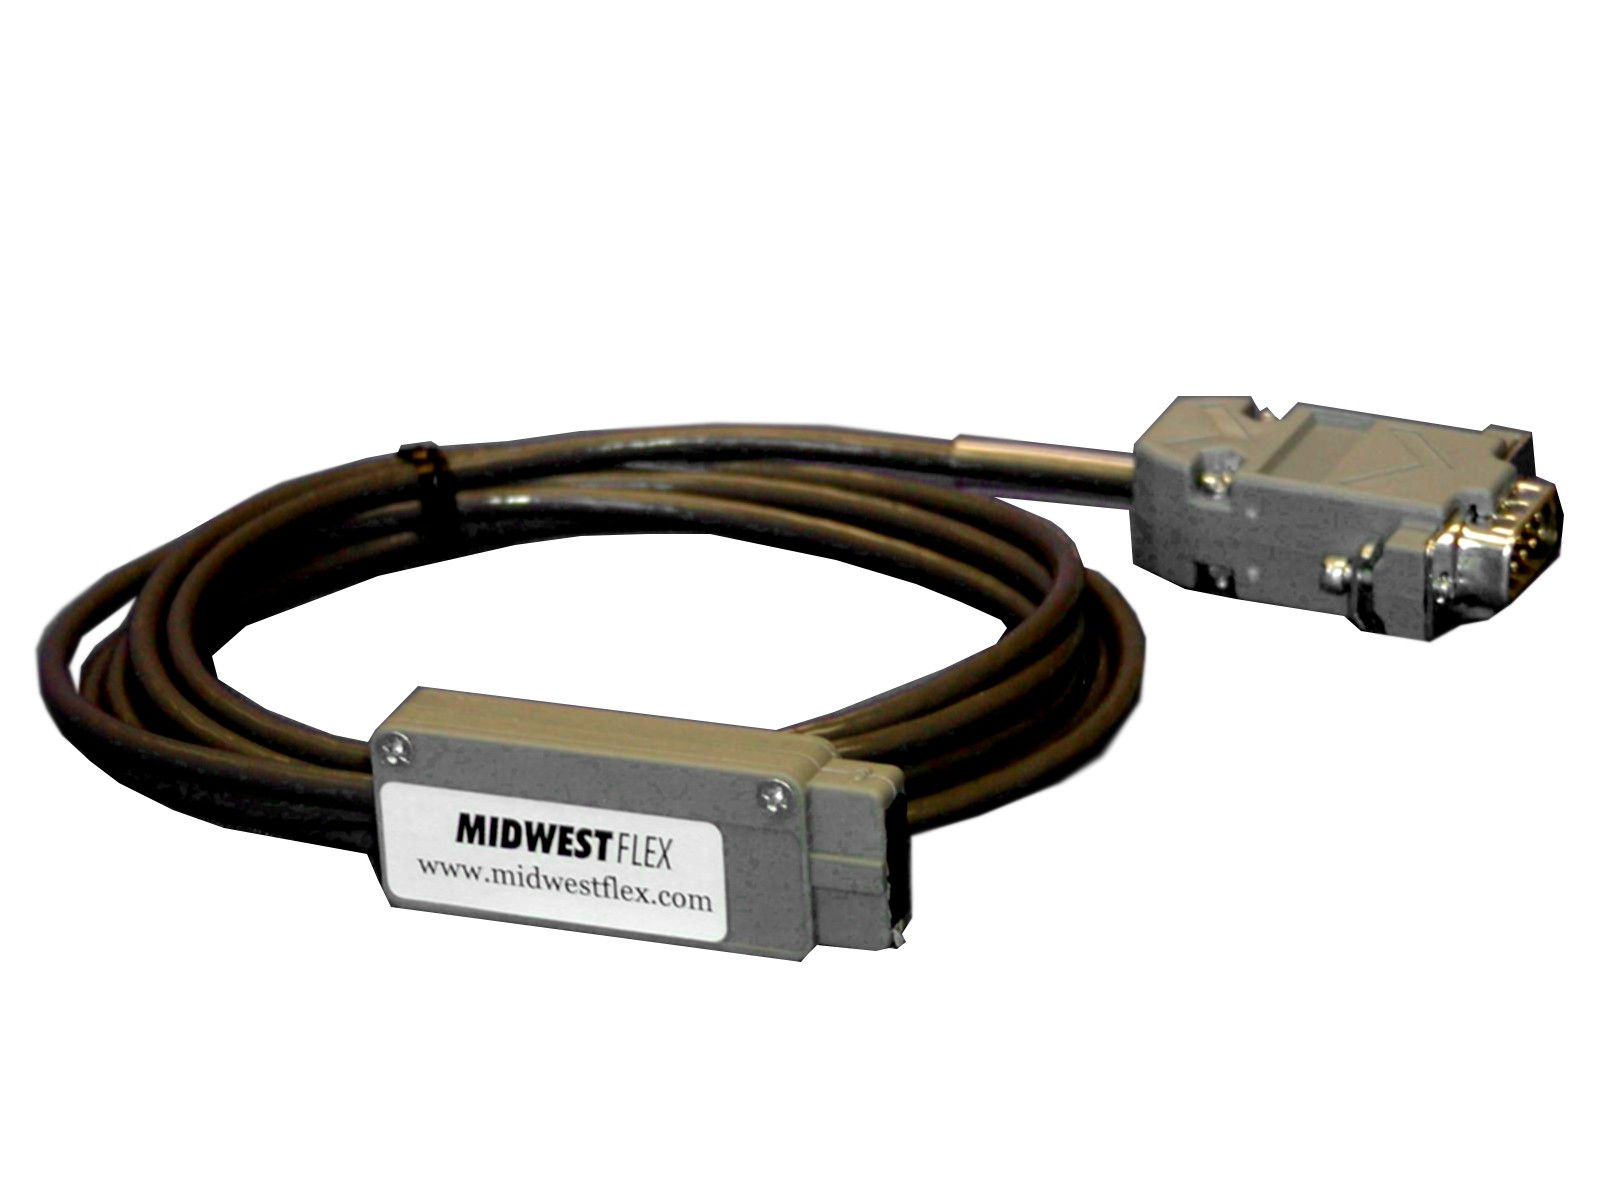 C-96505-06 FlexConnect Metronics QC1100/1200 to Digimatic output (6 ft)